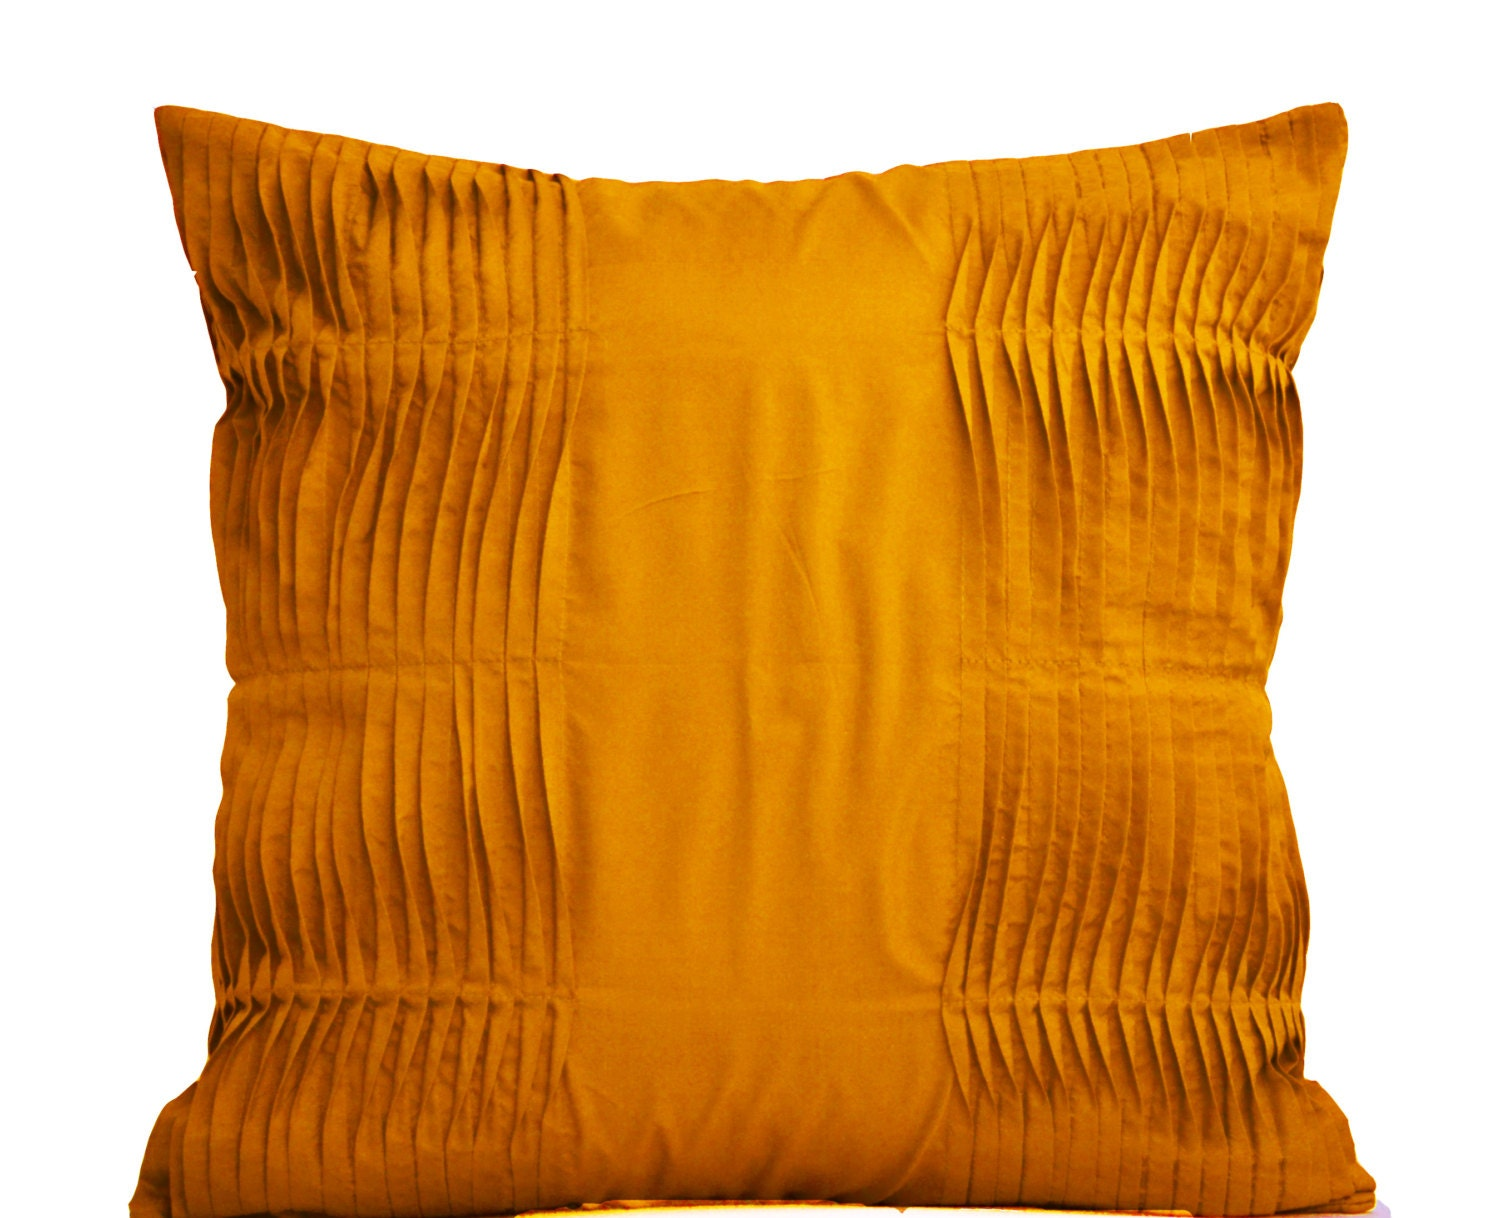 Mustard Throw Pillow Covers : Decorative Mustard Pillow Mustard Cotton Throw Pillow Cover